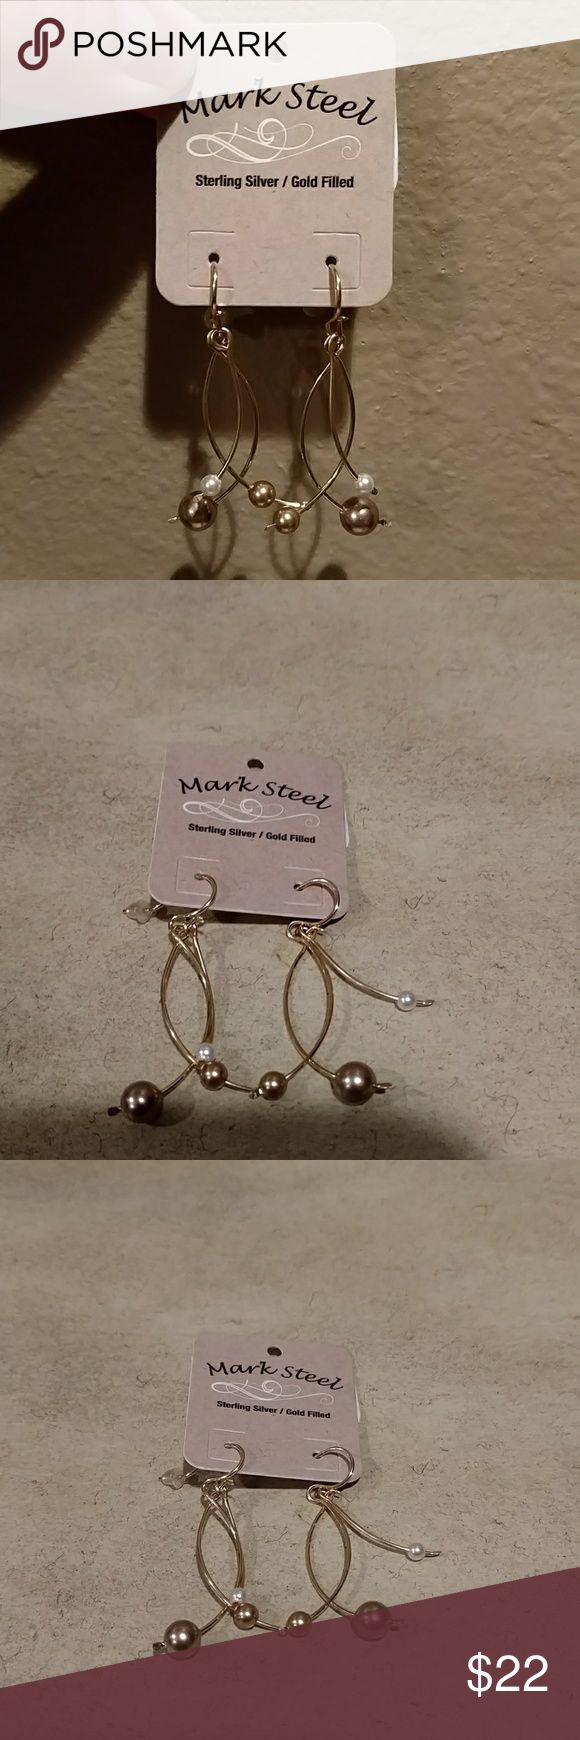 Mark Steel Earrings NEW! Gorgeous Sterling Silver gold filled earrings with pearls. These are new!! Purchased at a boutique in Texas. Mark Steel Jewelry Earrings